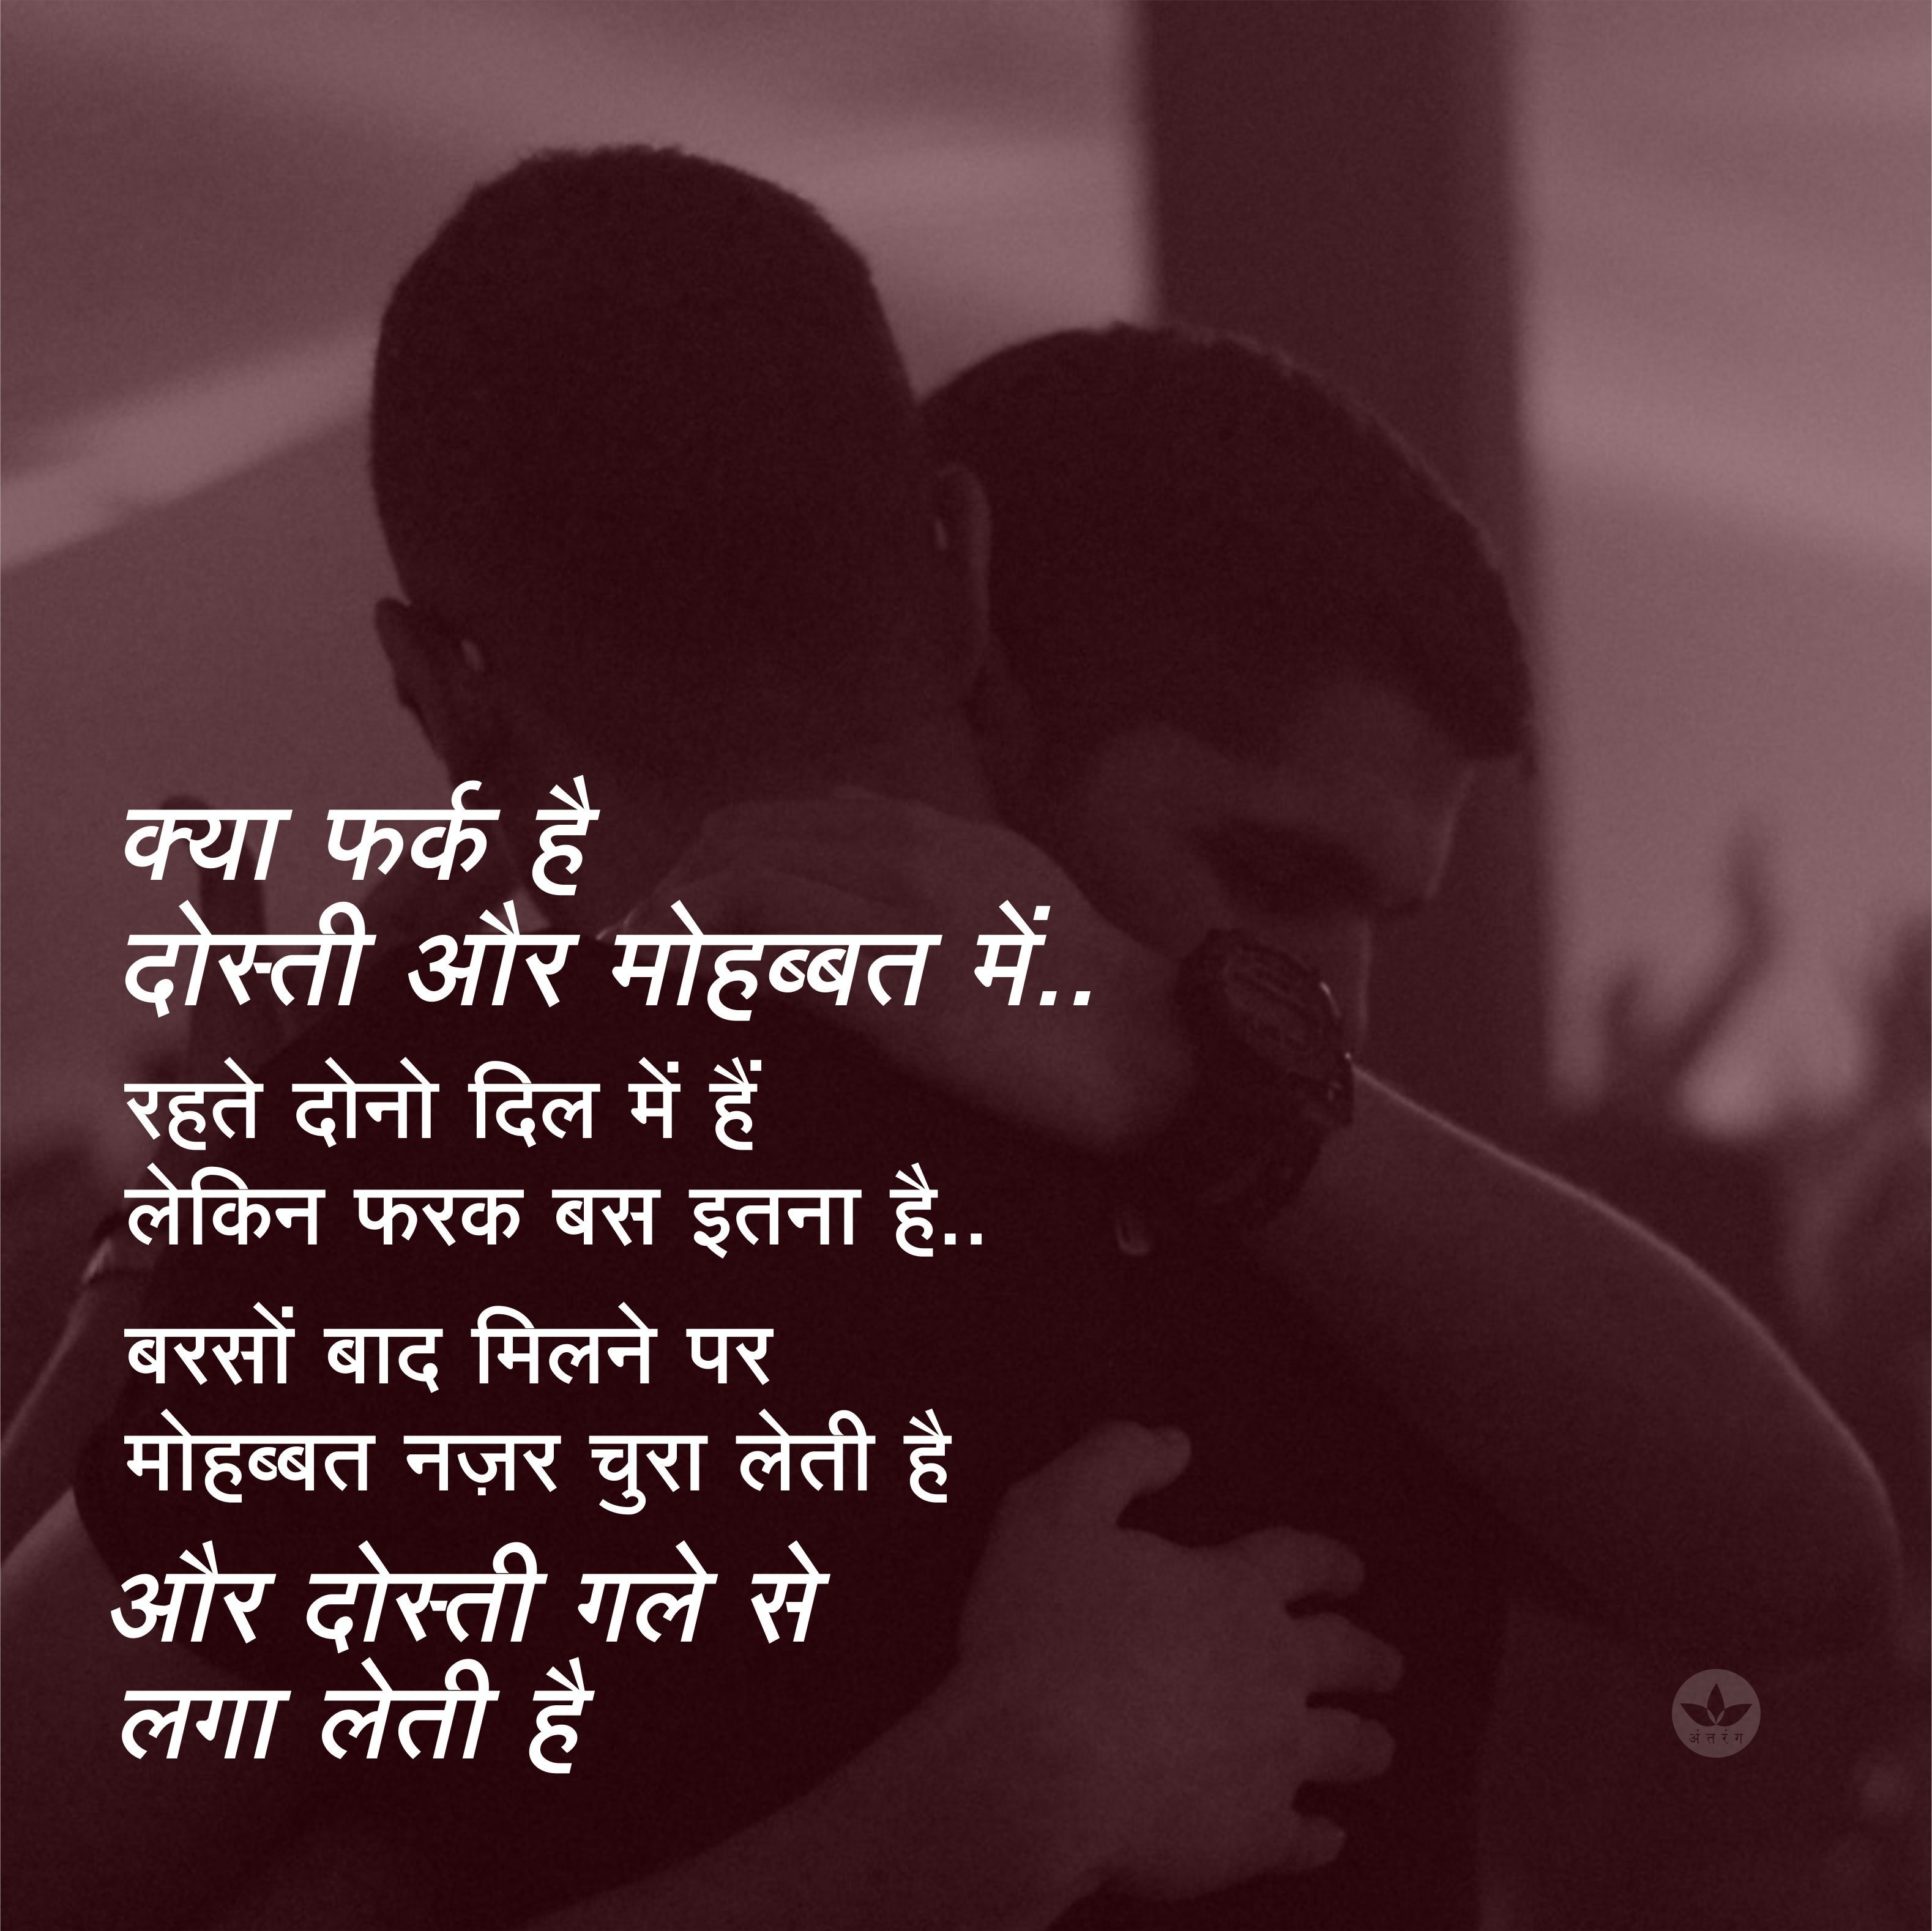 Pin By Disha Sawant On Shayari Heart Touching Love Quotes My Love Poems New Love Quotes